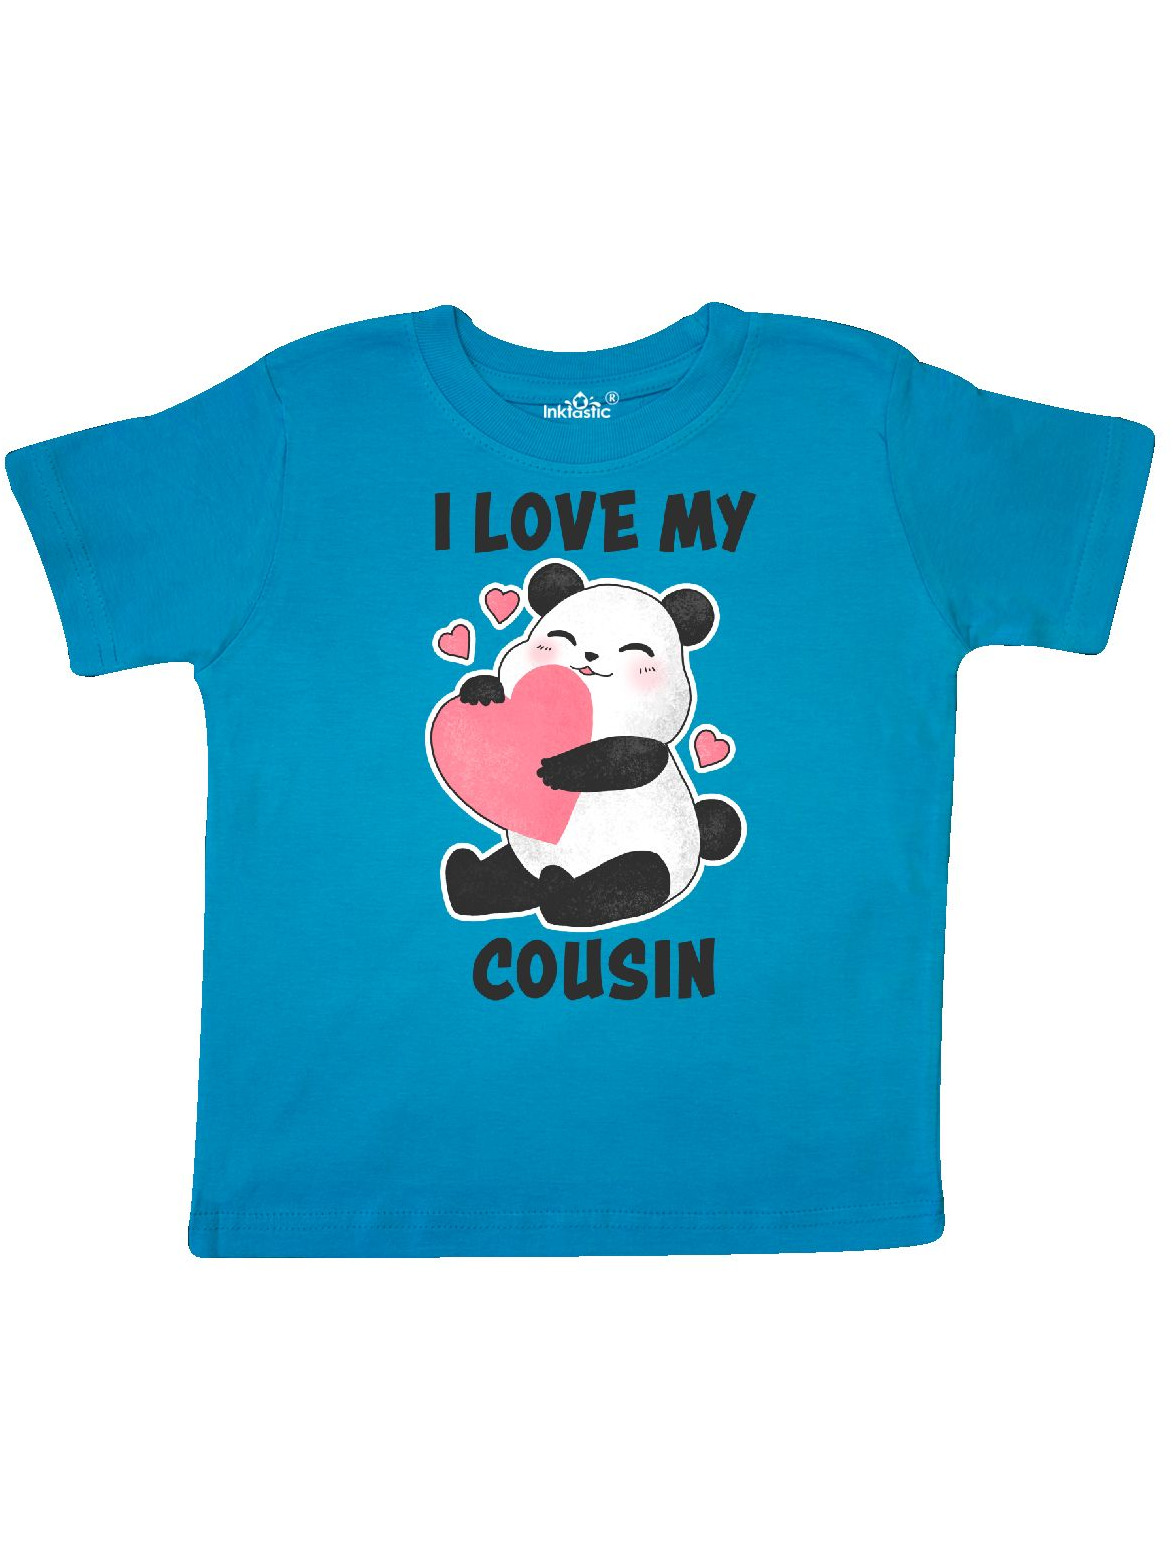 I Love My Cousin with Panda Illustration Toddler T-Shirt